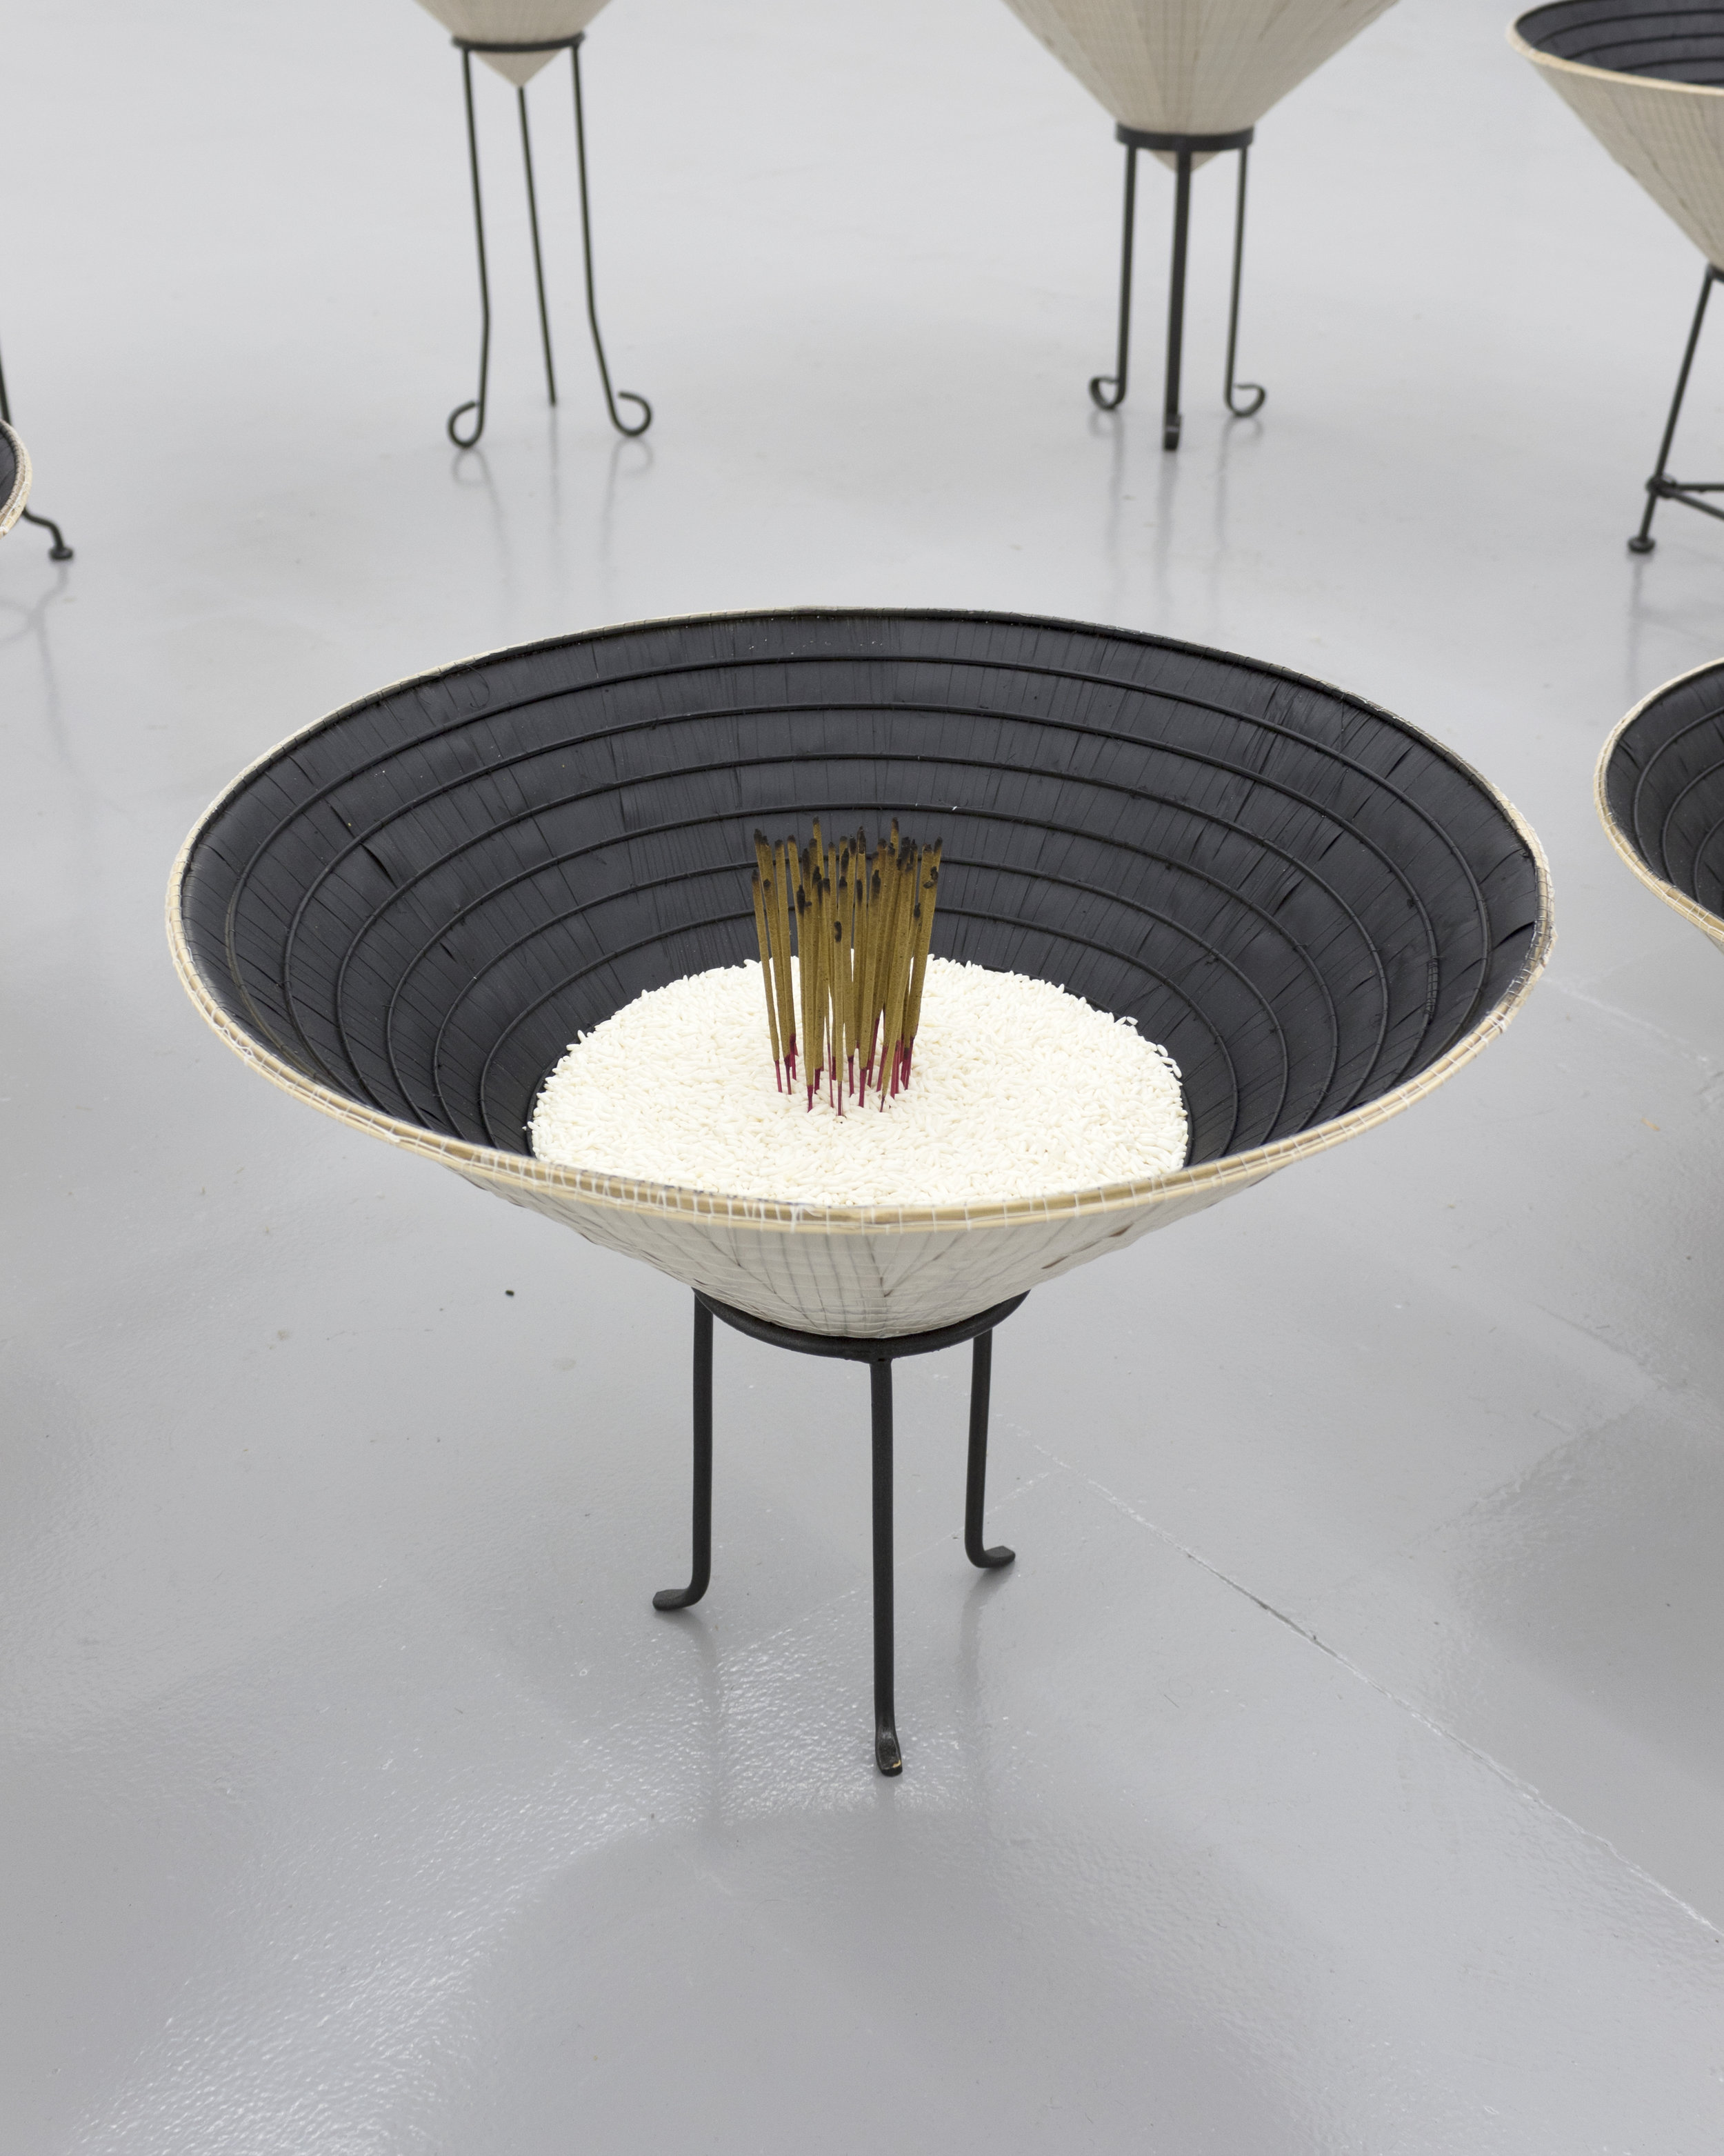 Millian Giang Lien Pham,  Reforge: 9 Phases (Nine),  2019. Conical hat, sweet rice, incense, metal stand